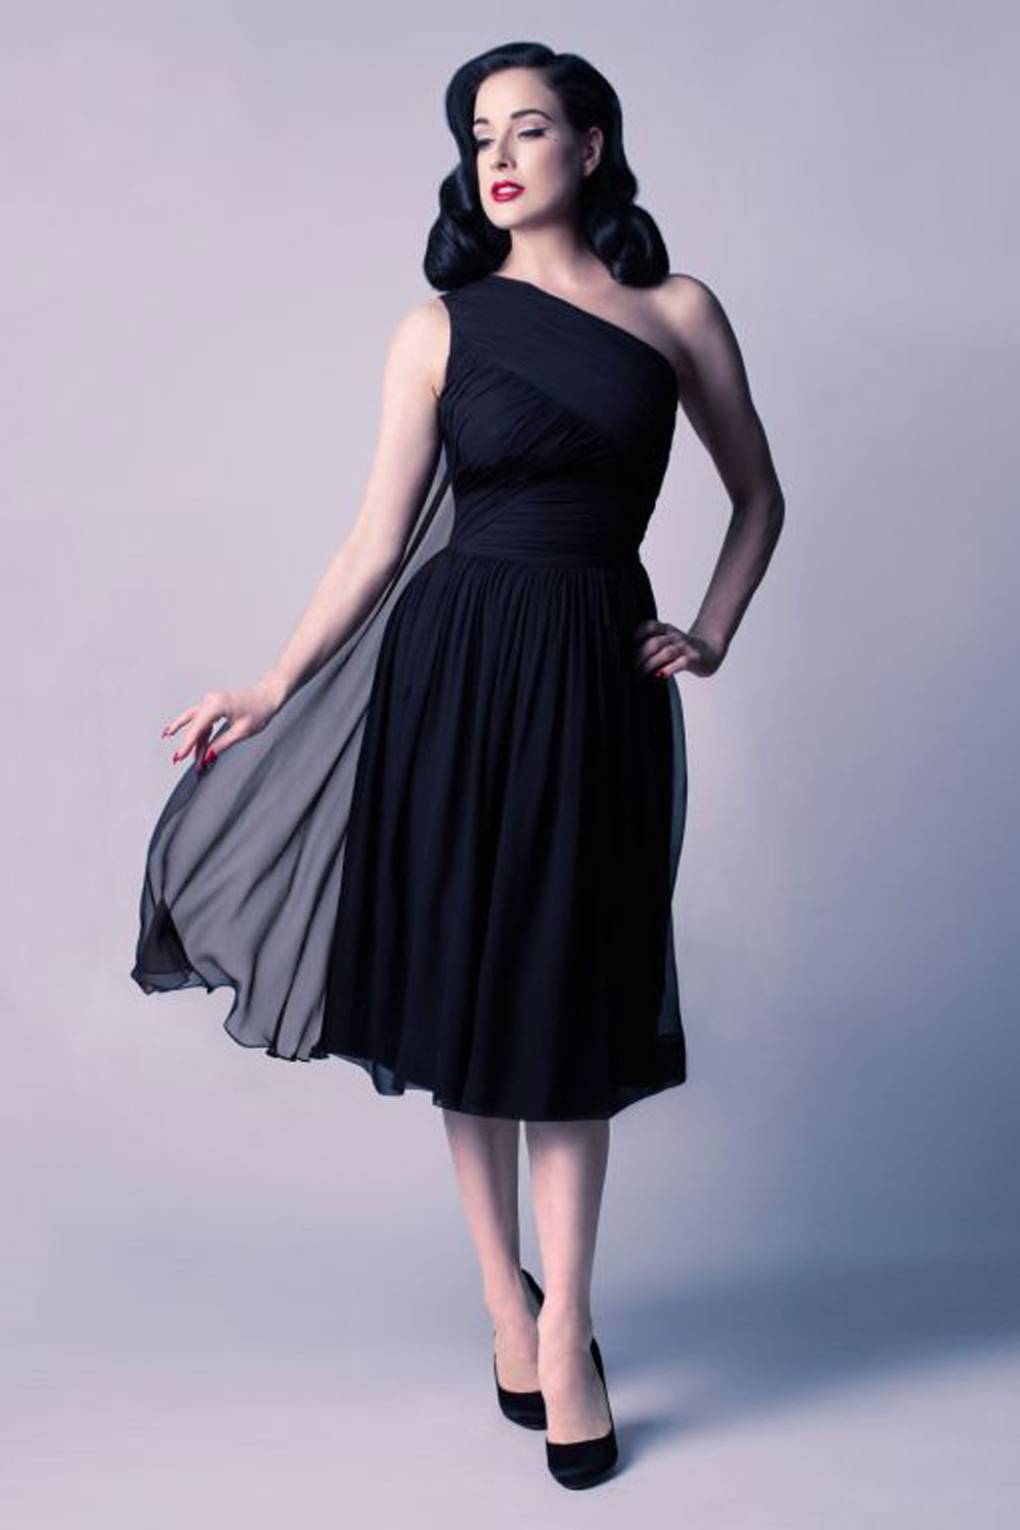 7869c089c Dita Von Teese Dresses Collection - Pictures And Interview